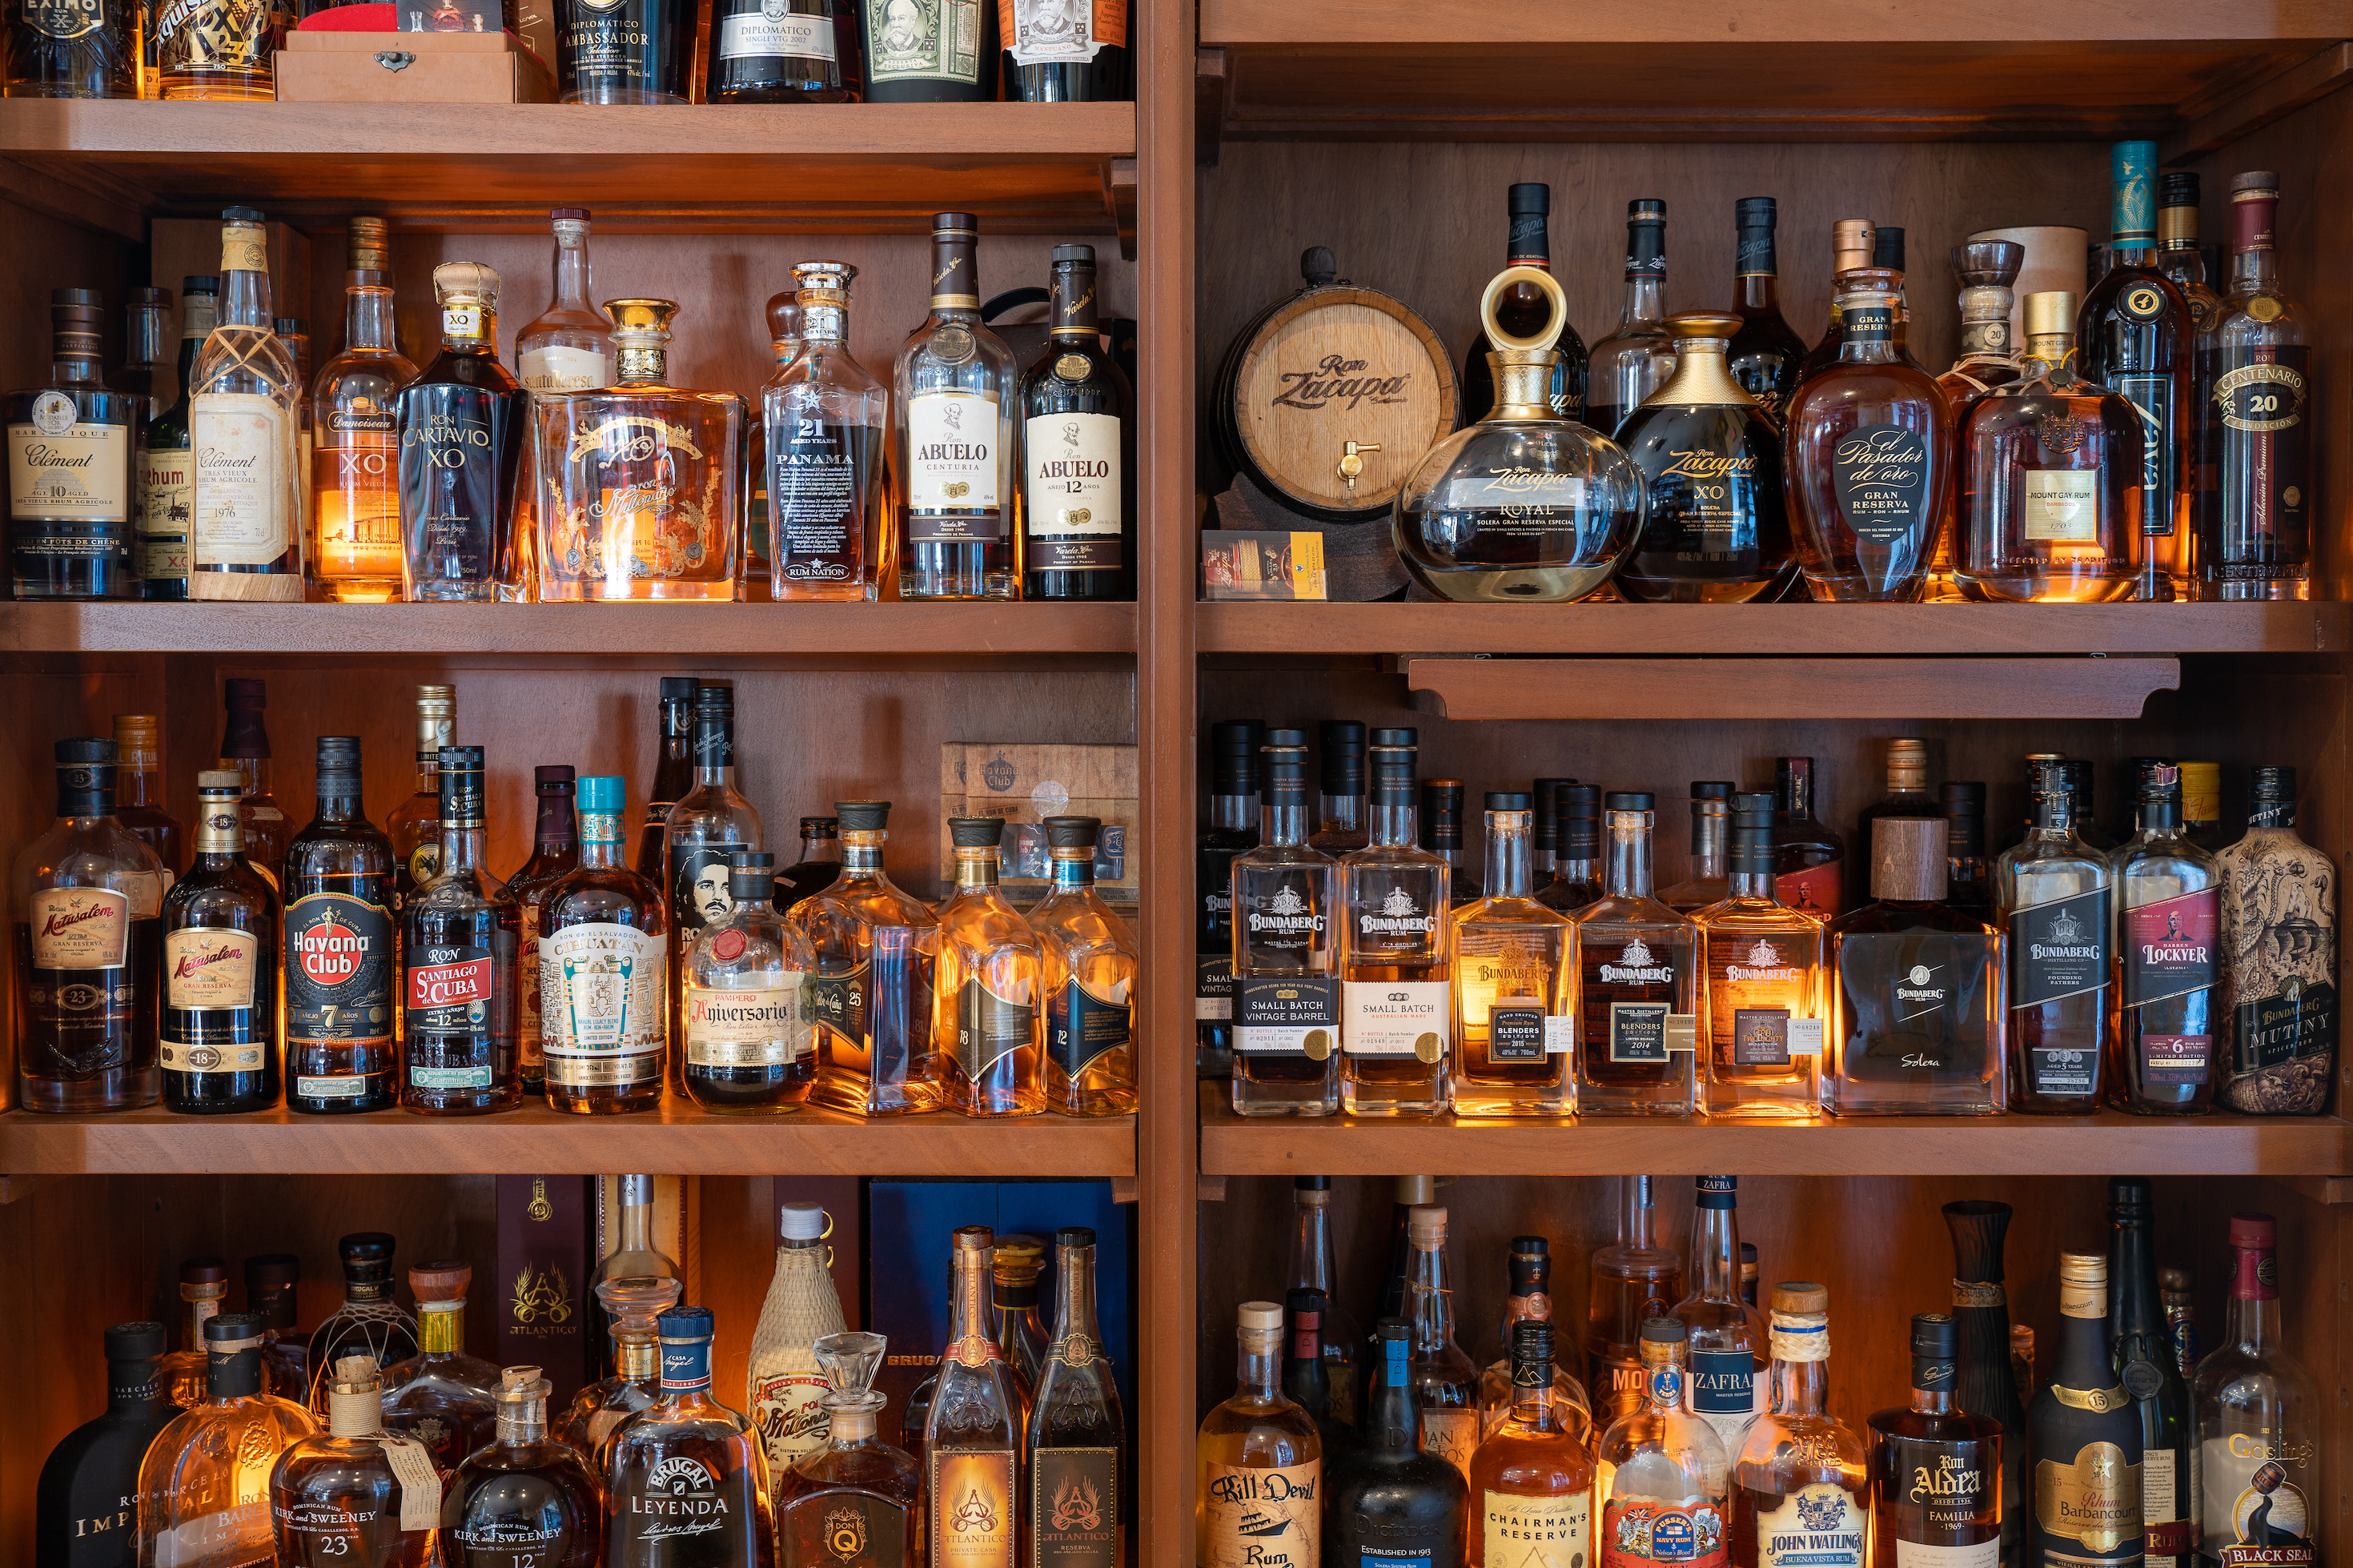 Tukka Cayman Rum Cabinet Selection